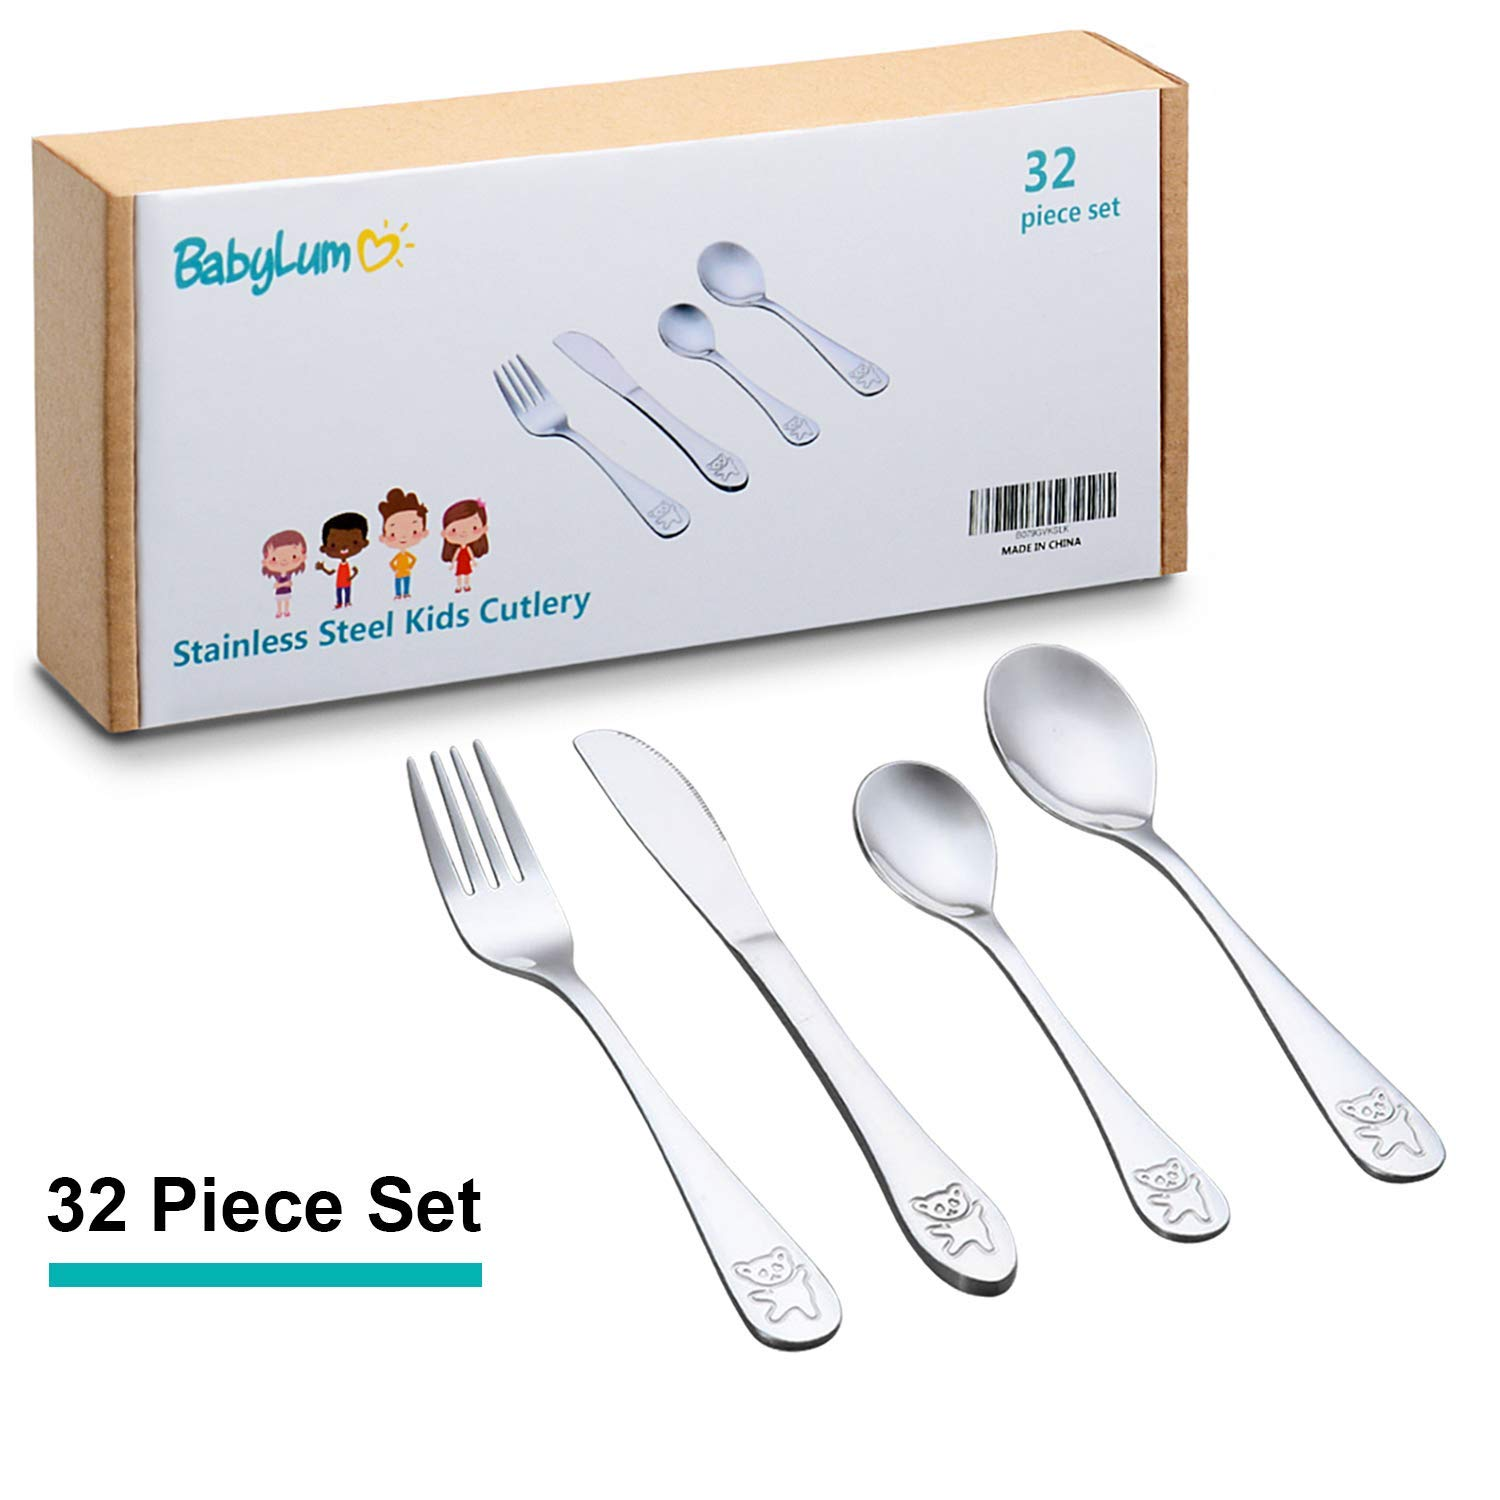 32 Piece Utensils Set for Kids, Stainless Steel Cutlery Flatware, Safe Silverware for Toddler and Child, Total 8 Place Settings with 8 Knives, 8 Forks, 8 Spoons, 8 Dessert Spoons. (Set of 32)